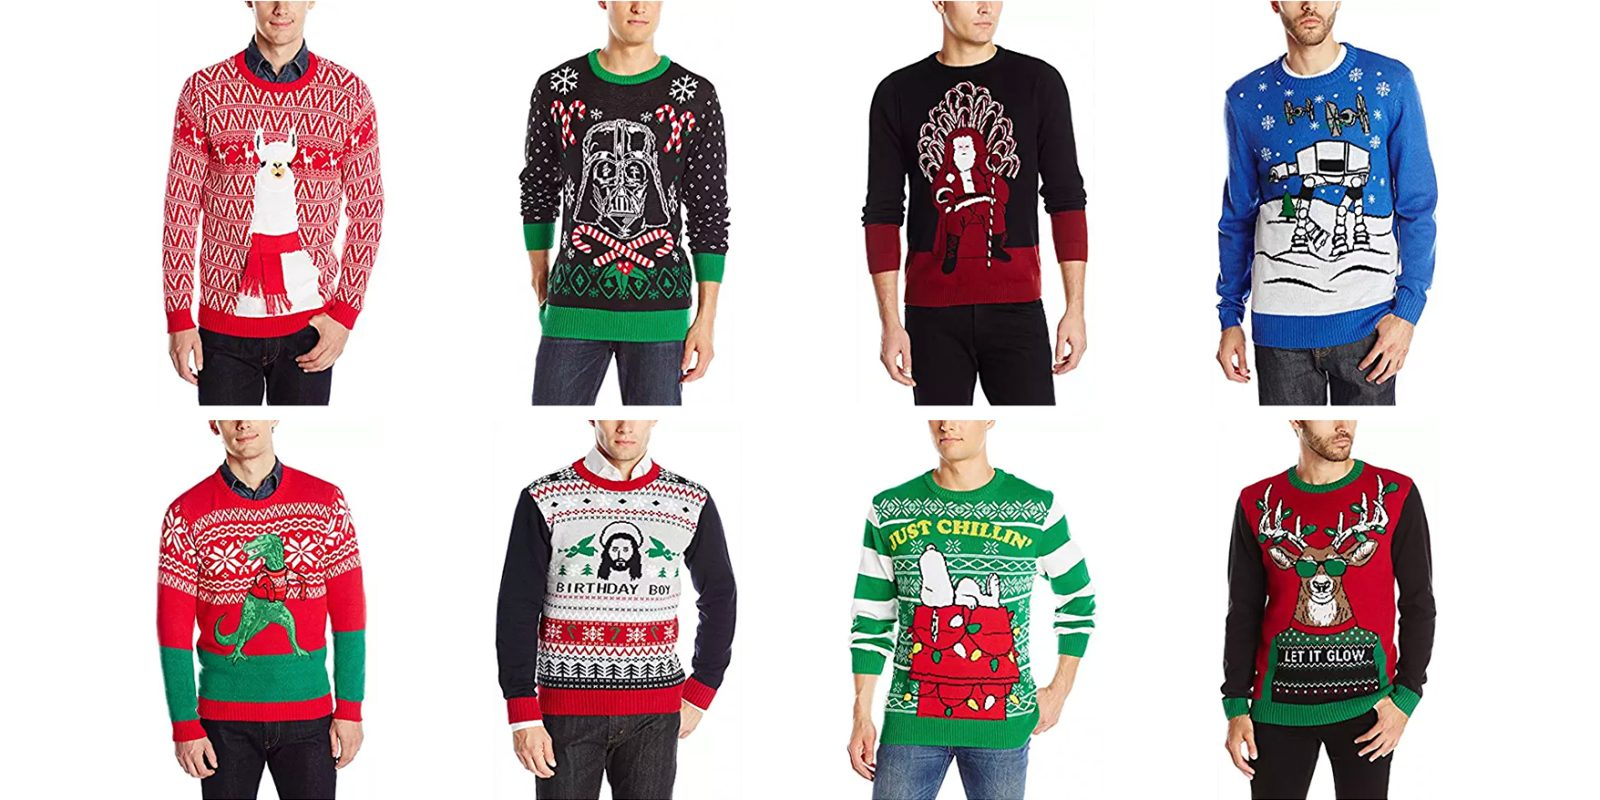 ugly christmas sweaters from 13 at amazon star wars peanuts much more - Ugly Christmas Sweater Amazon